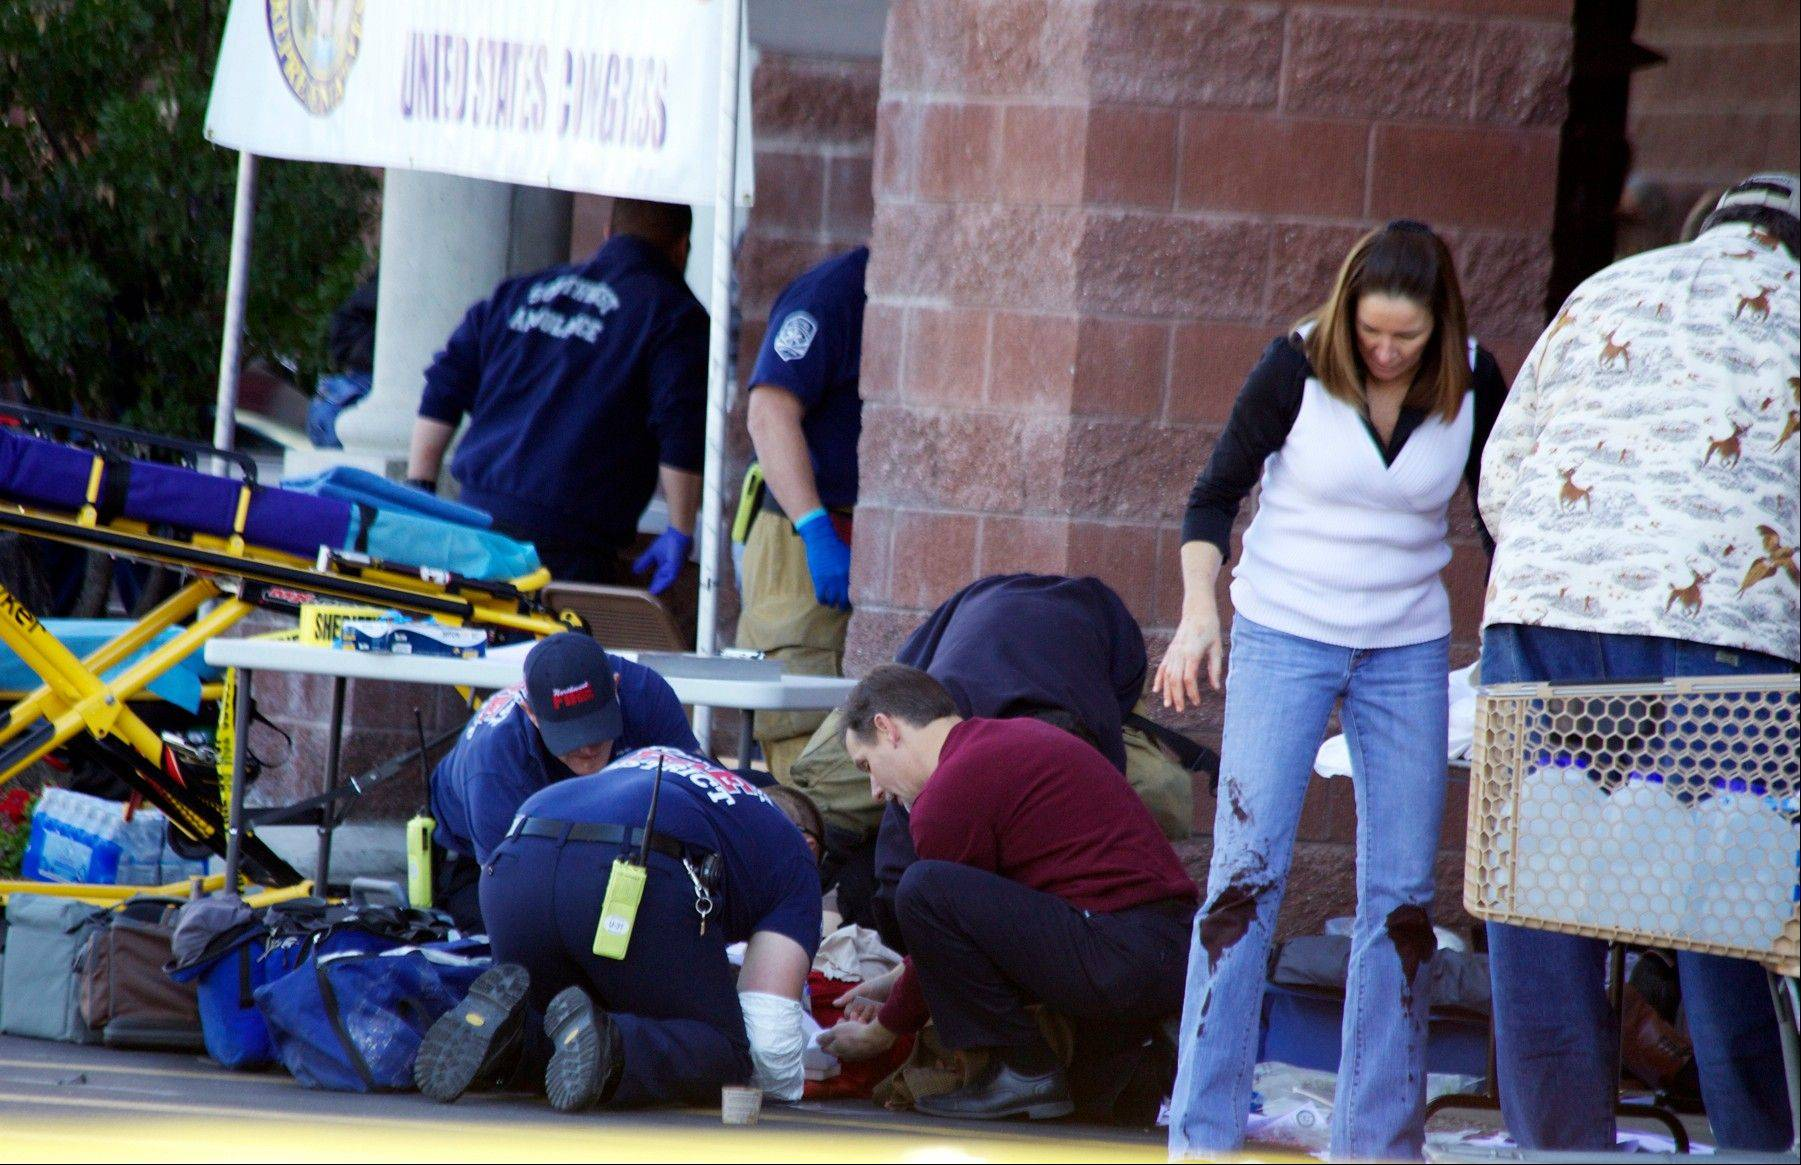 Emergency personnel attend to a shooting victim outside a shopping center in Tucson, Ariz. in this Saturday, Jan. 8, 2011 photo taken where U.S. Rep. Gabrielle Giffords, D-Ariz., and others were shot as the congresswoman was meeting with constituents.